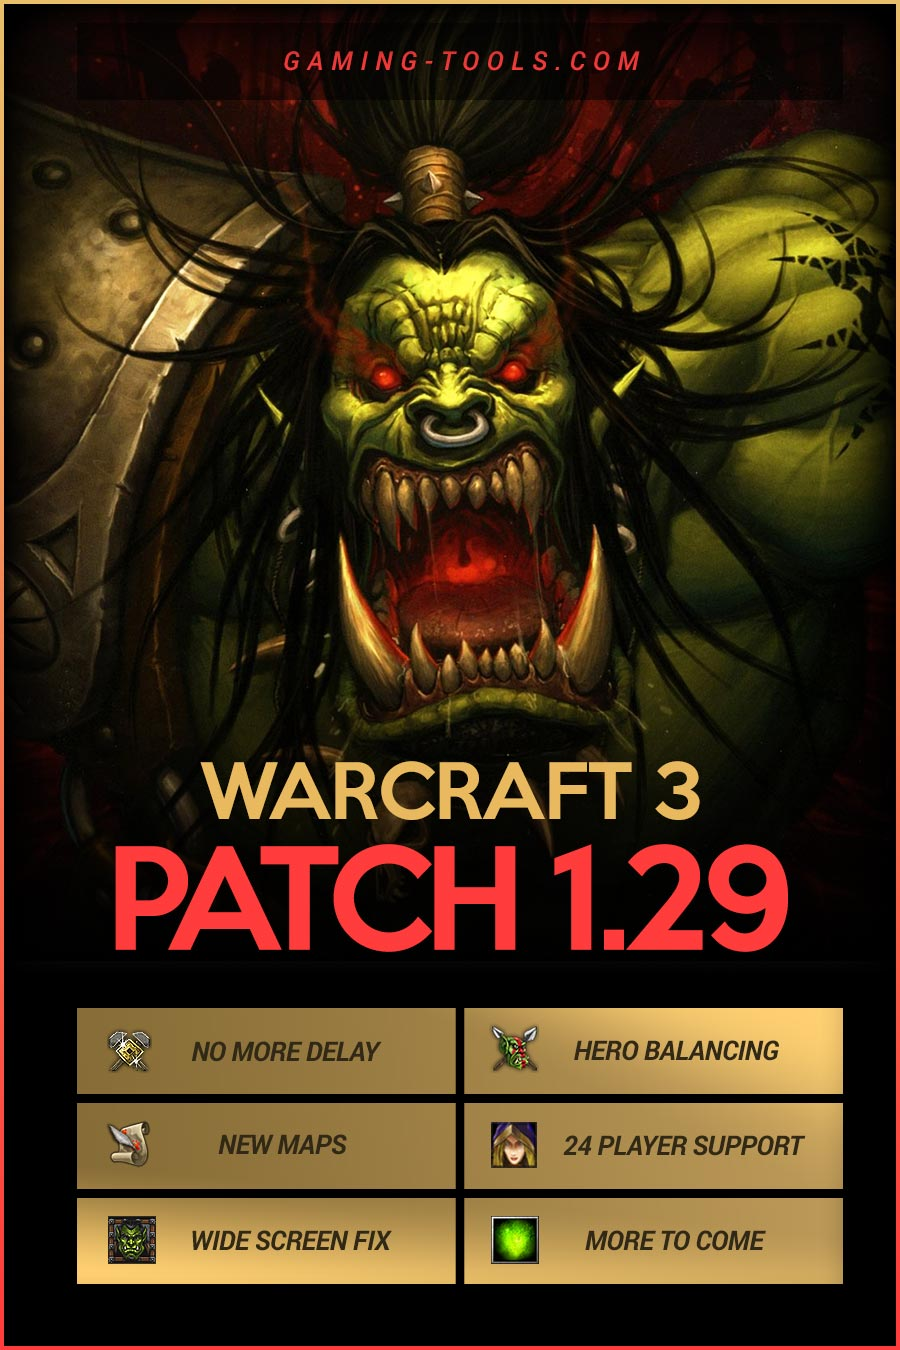 Warcraft 3 Patch 1.29 Infographic